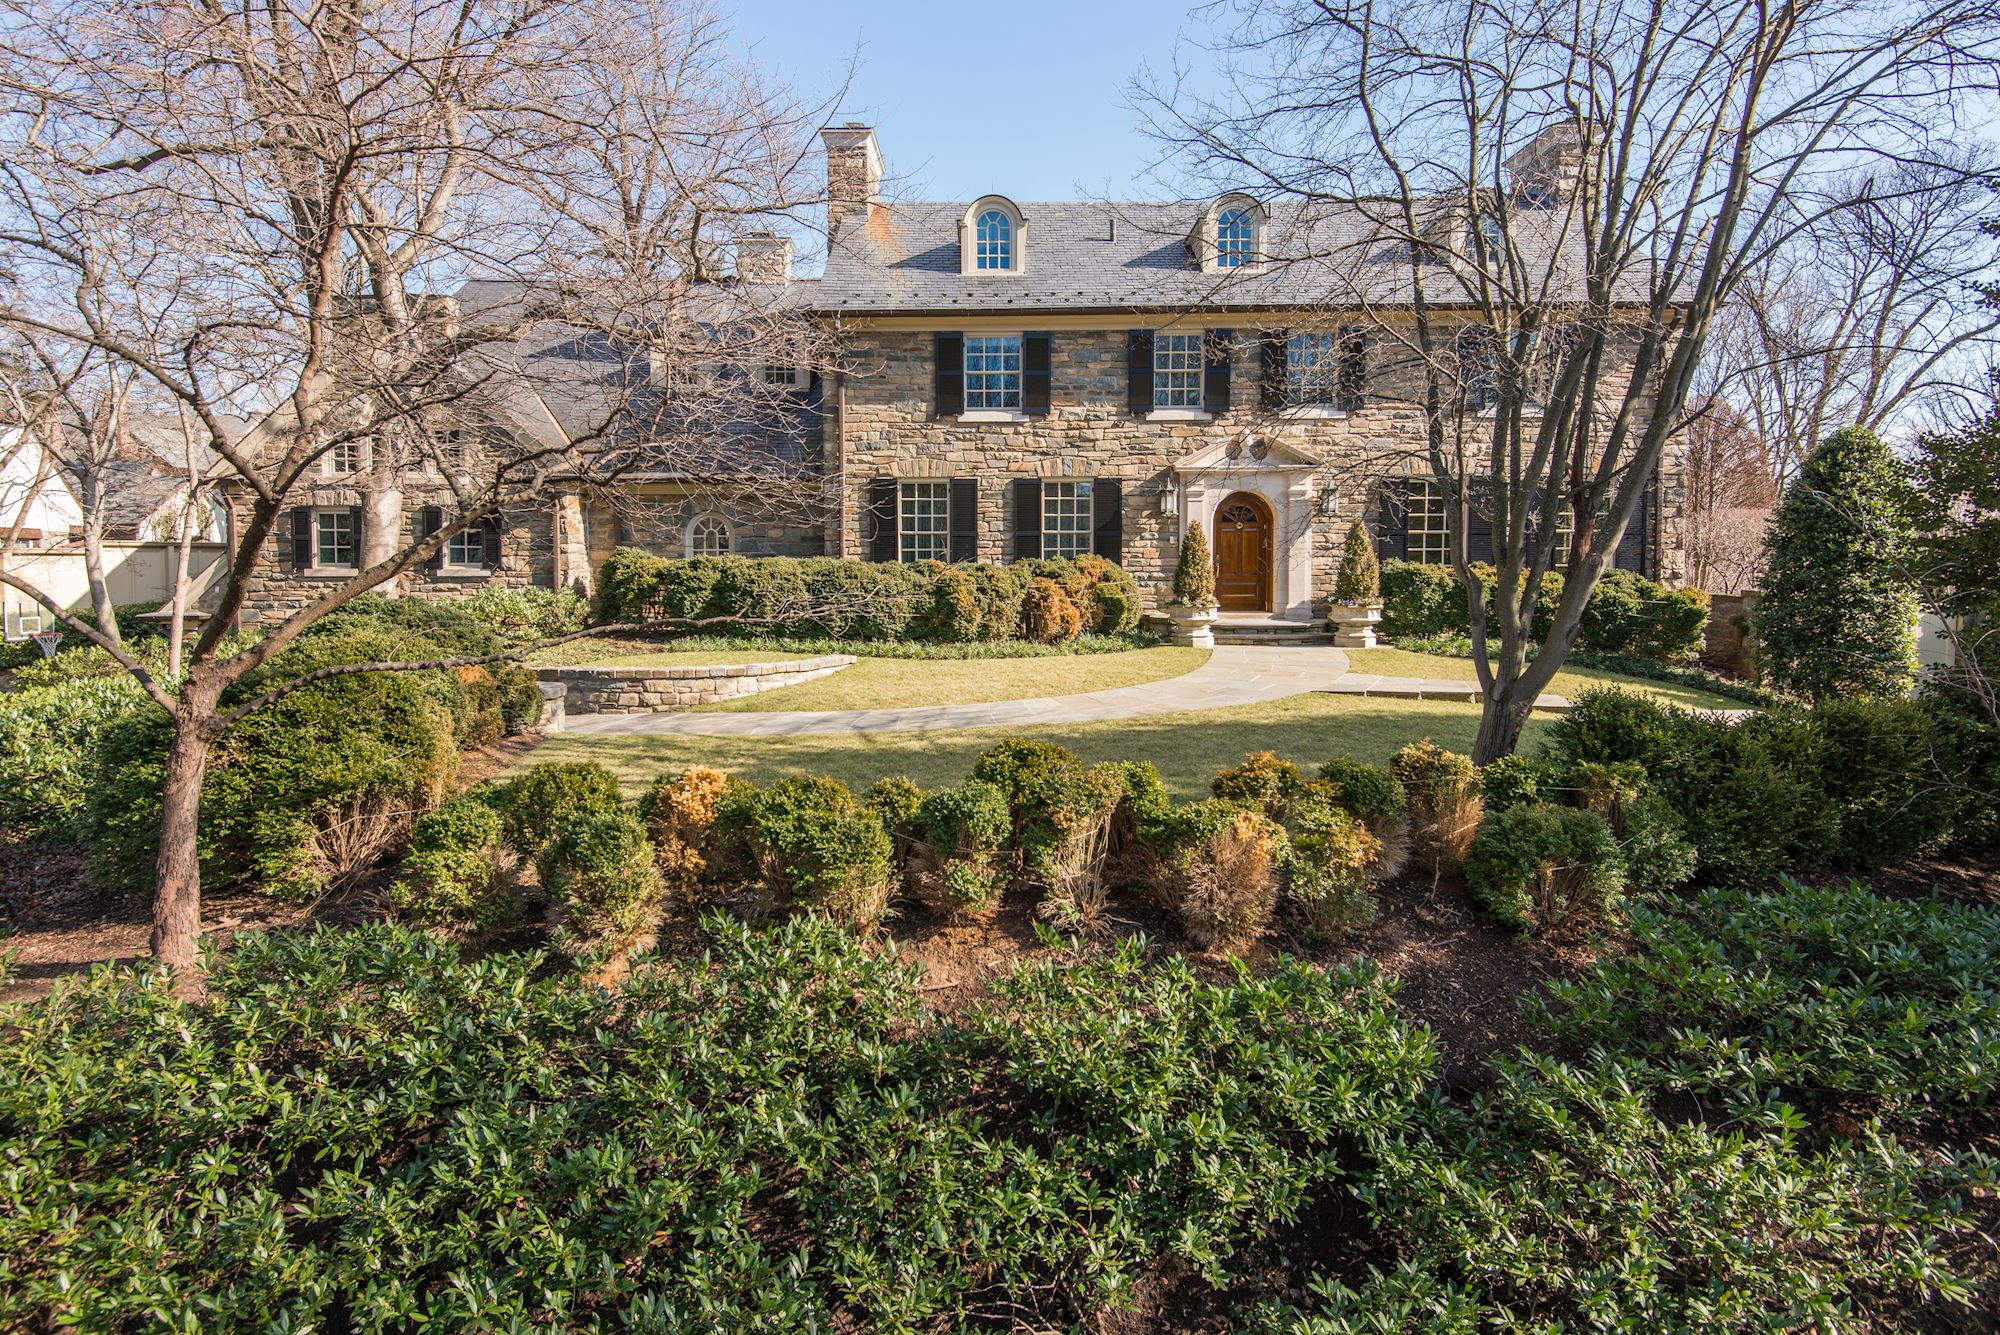 Not For Sale >> HOMEVISIT VIRTUAL TOUR: 3005 45TH ST NW, WASHINGTON, DC ...